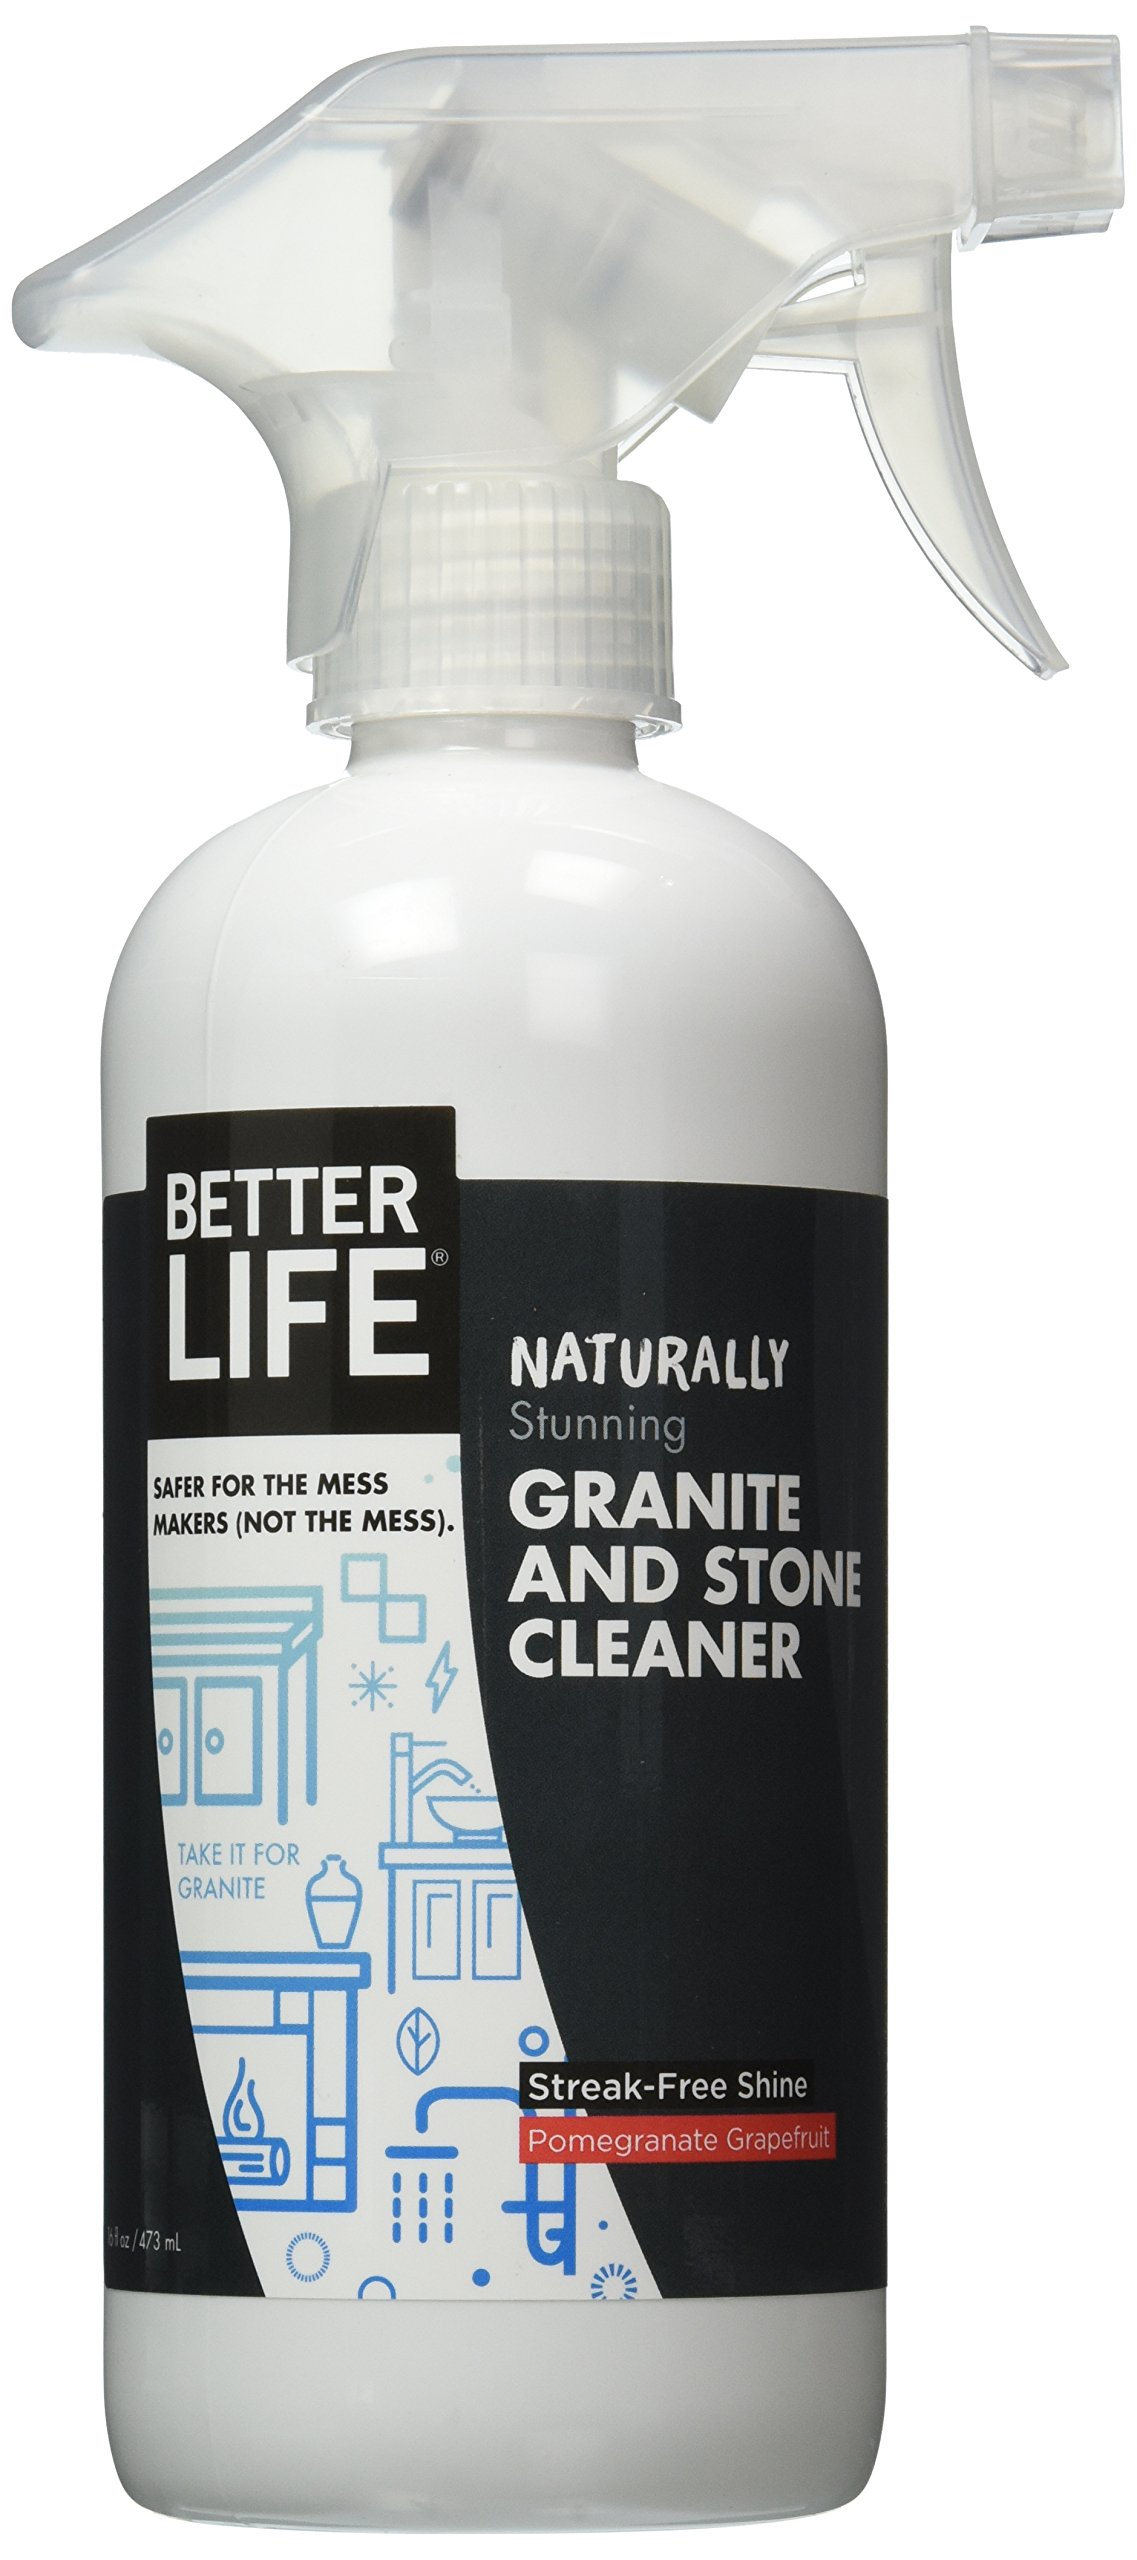 Better Life Natural Granite and Stone Cleaner, Pomegranate & Grapefruit, 16 Ounces, 24117